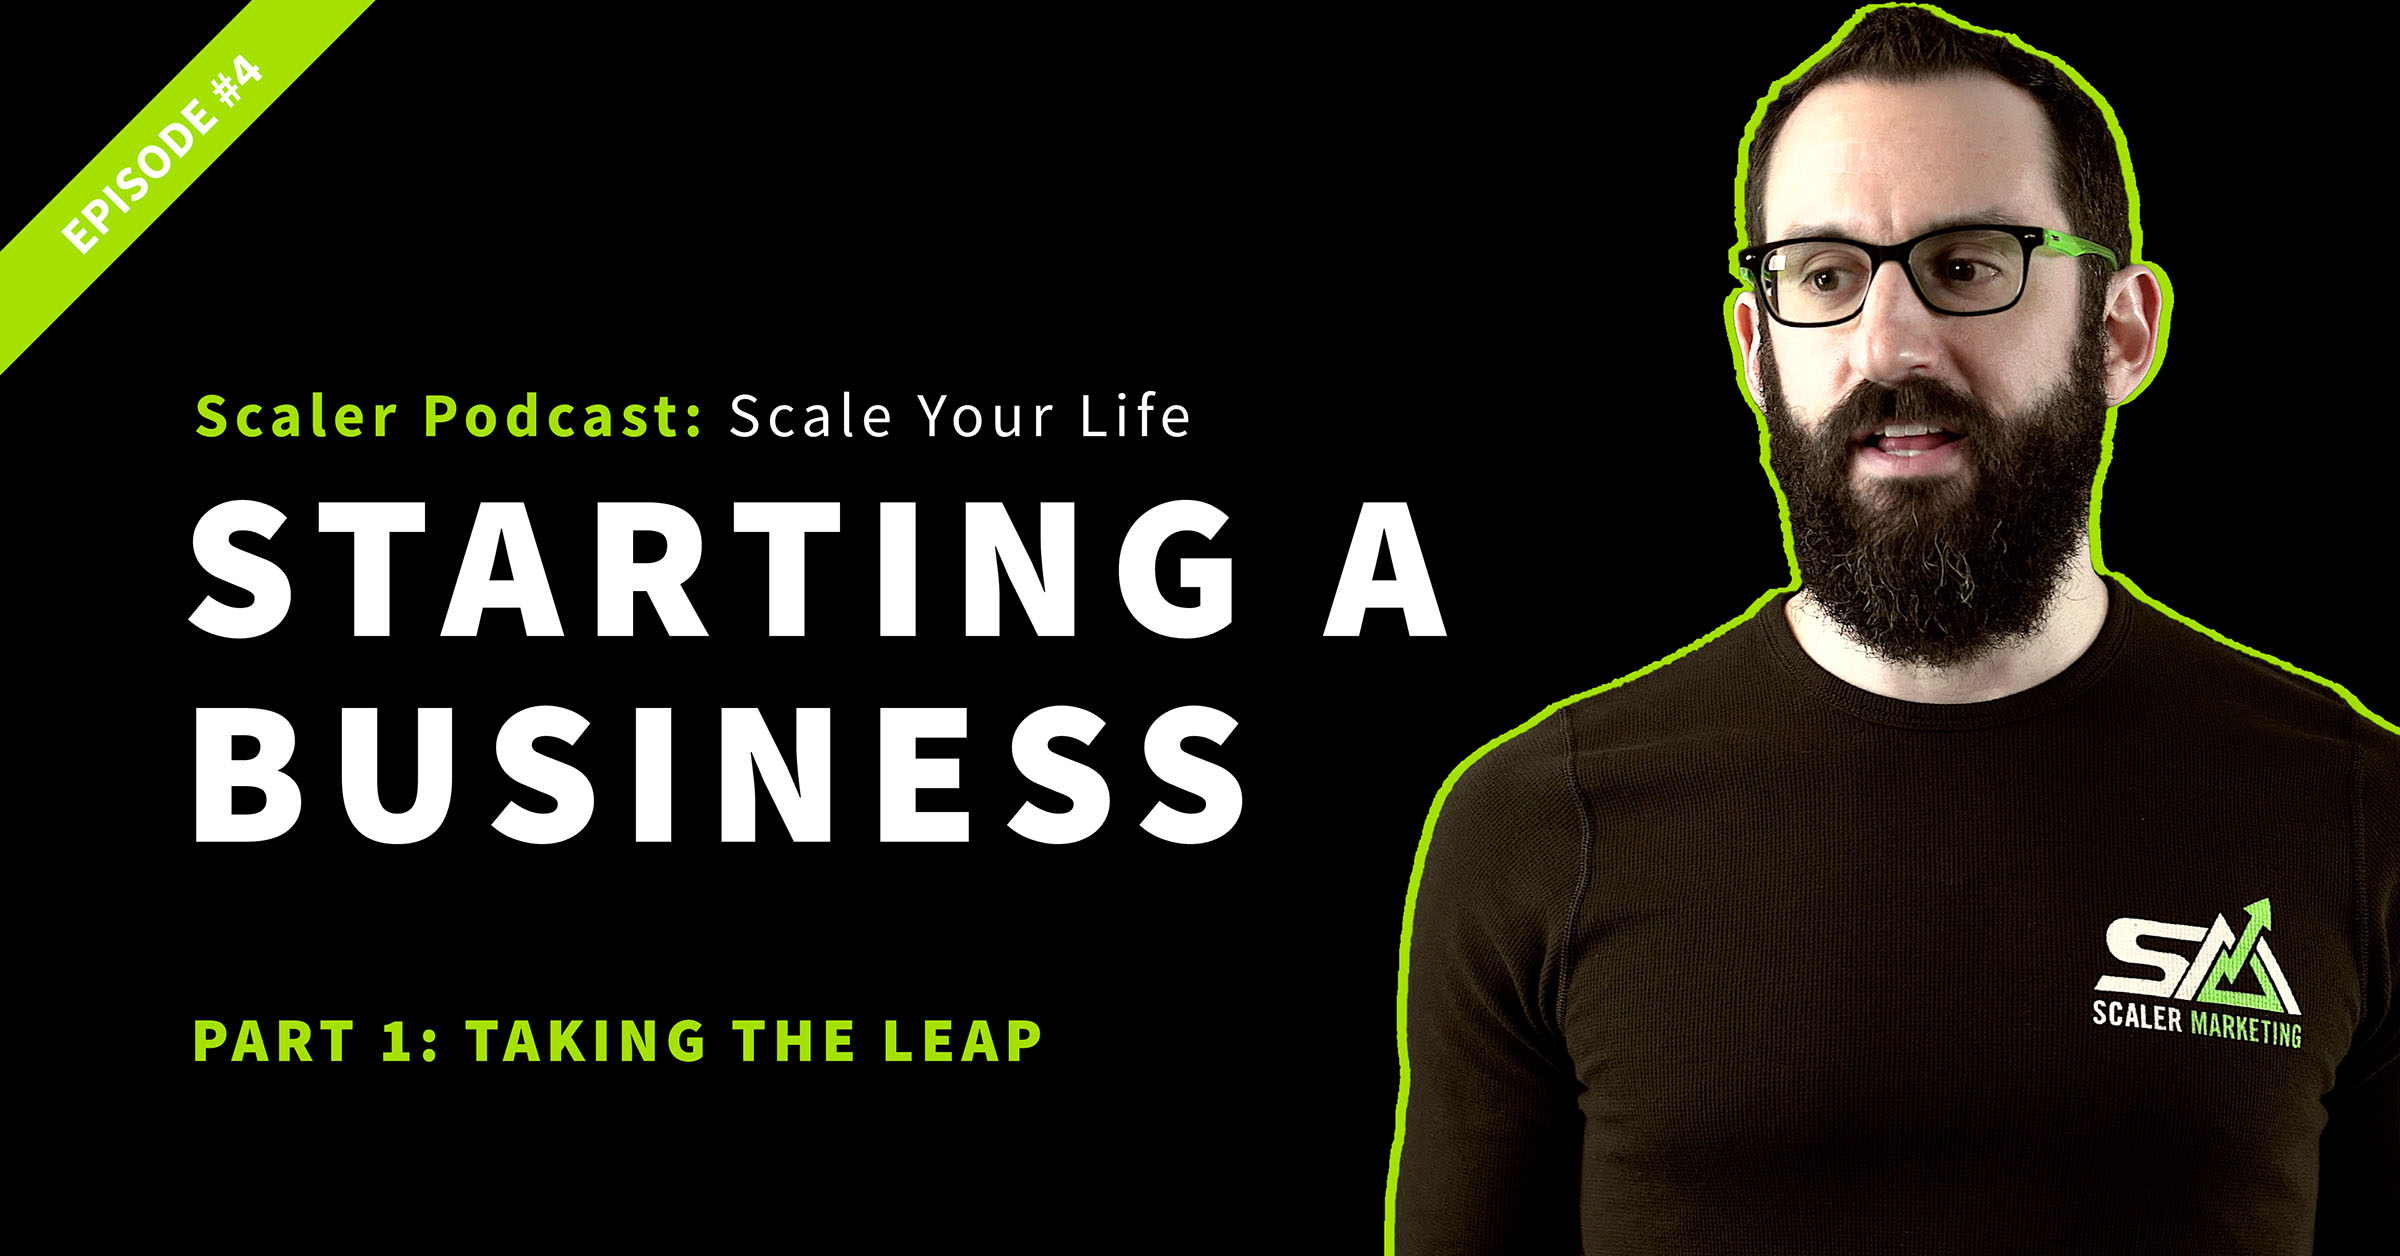 Episode 4 - Starting A Business Pt. 1 - Taking The Leap